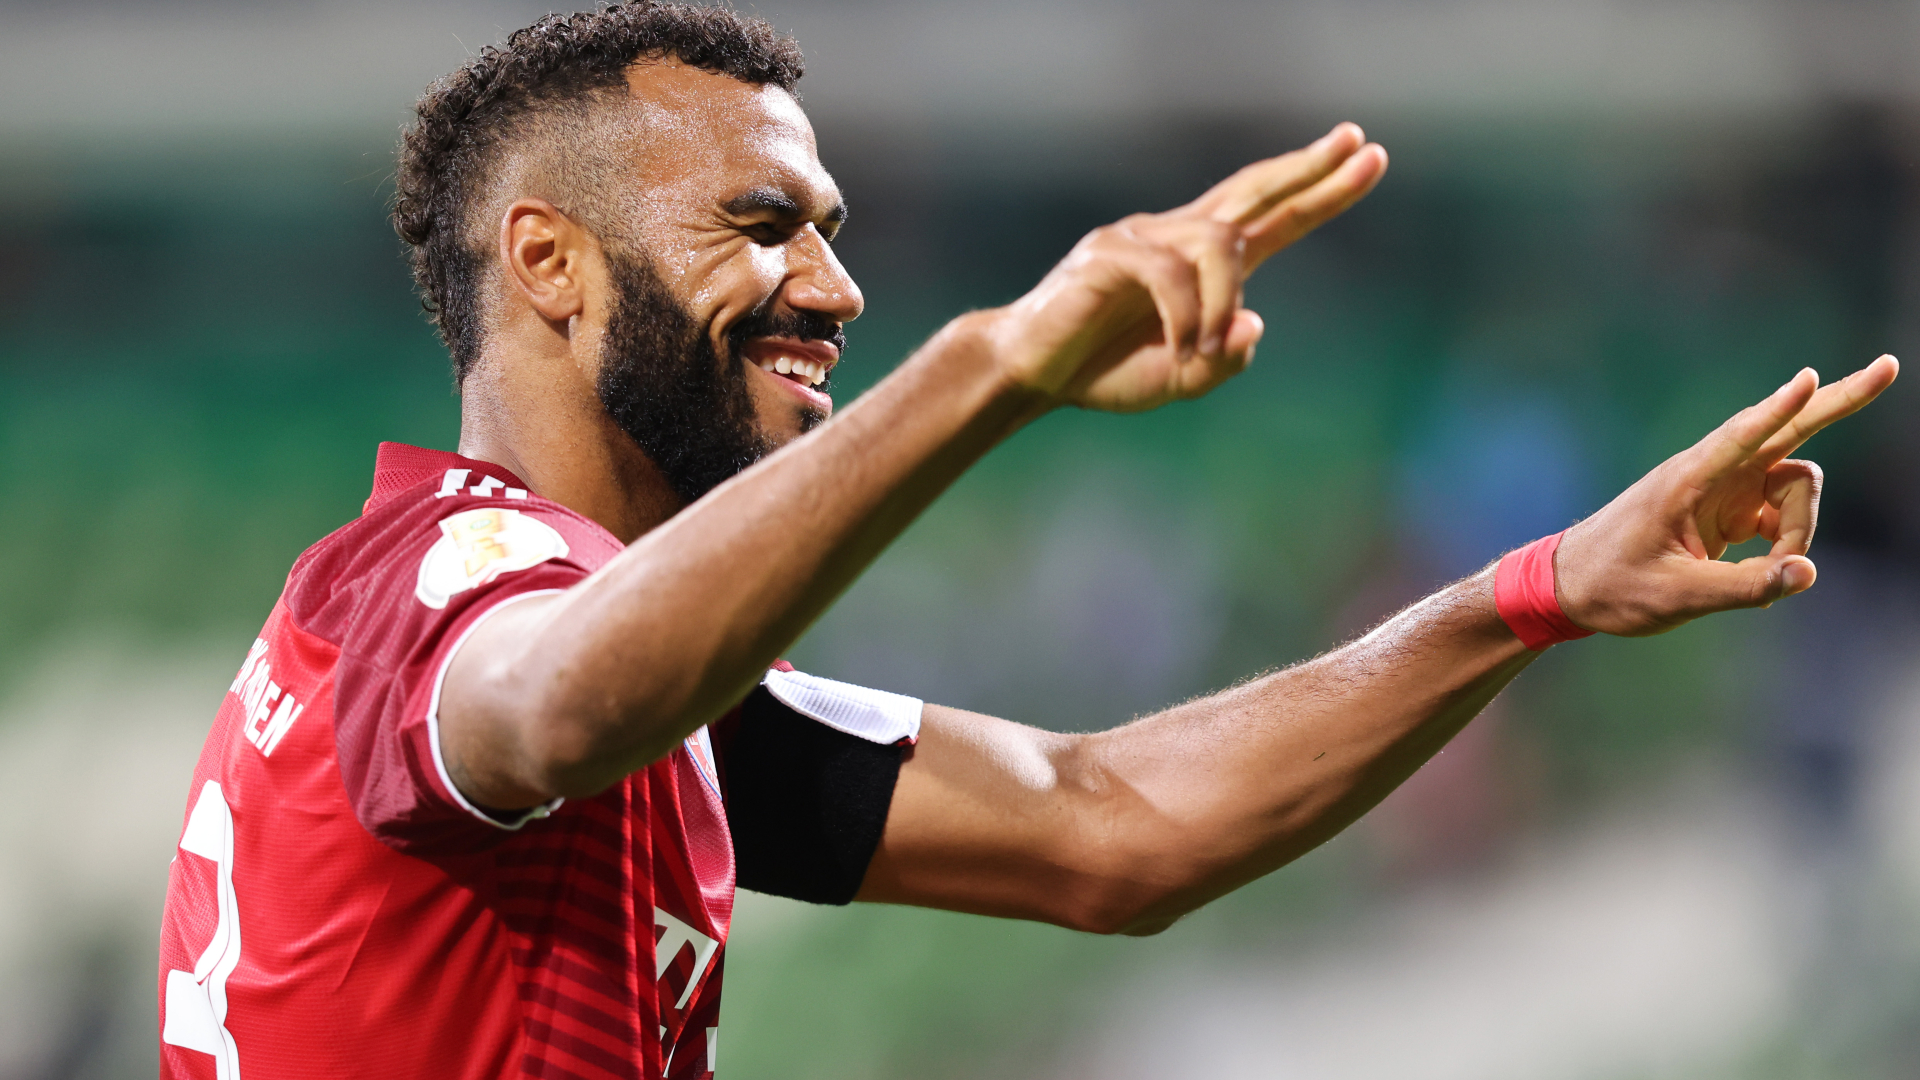 Bayern Munich four-goal hero Choupo-Moting: I'm very positive and happy